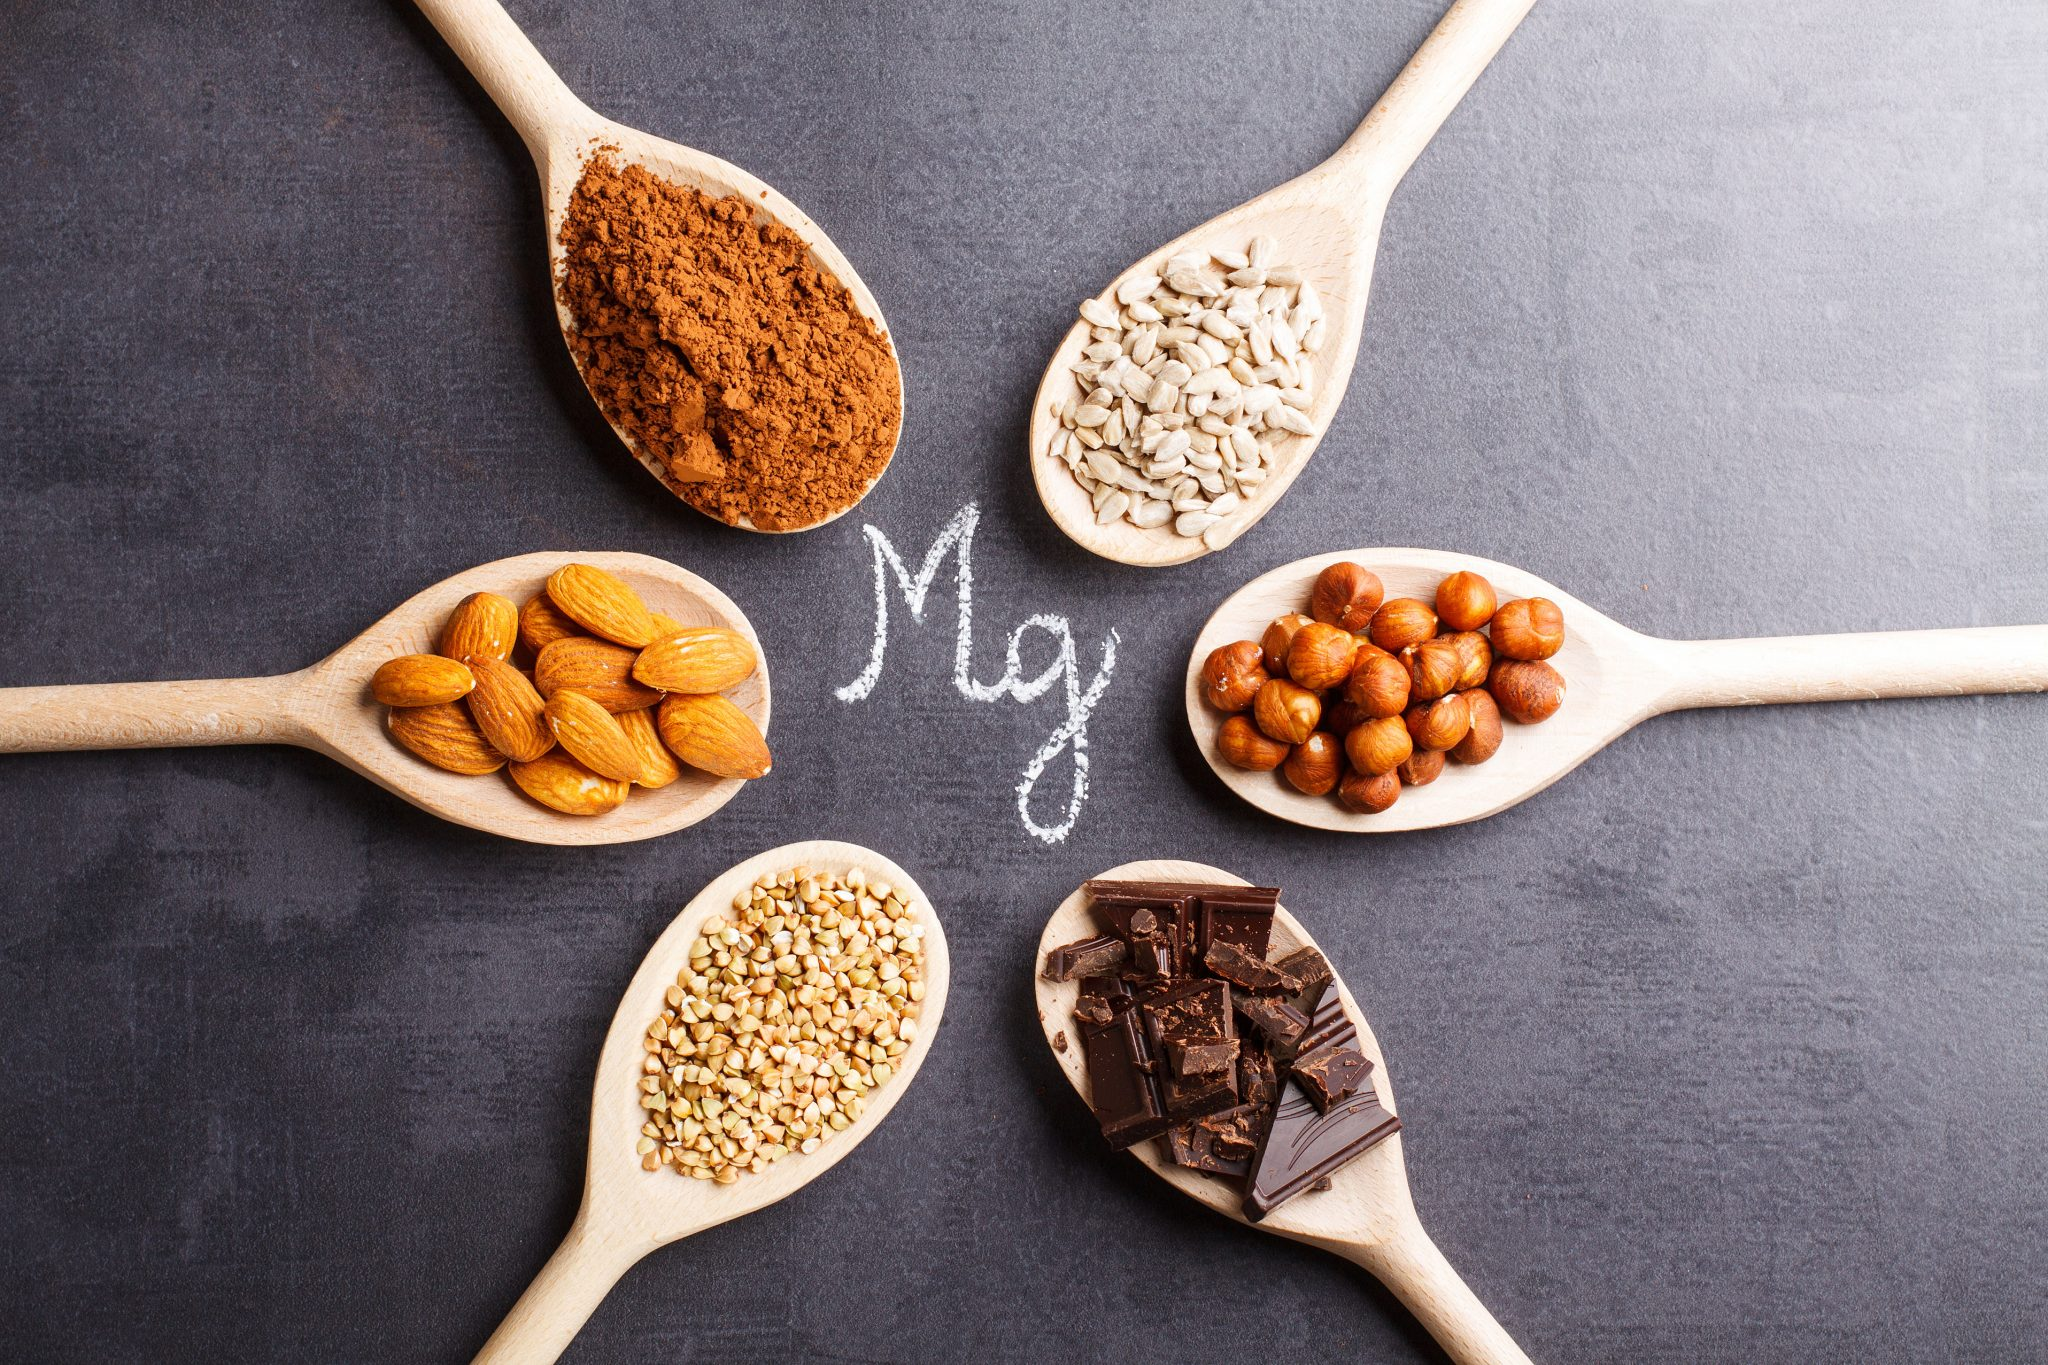 uses and benefits of magnesium